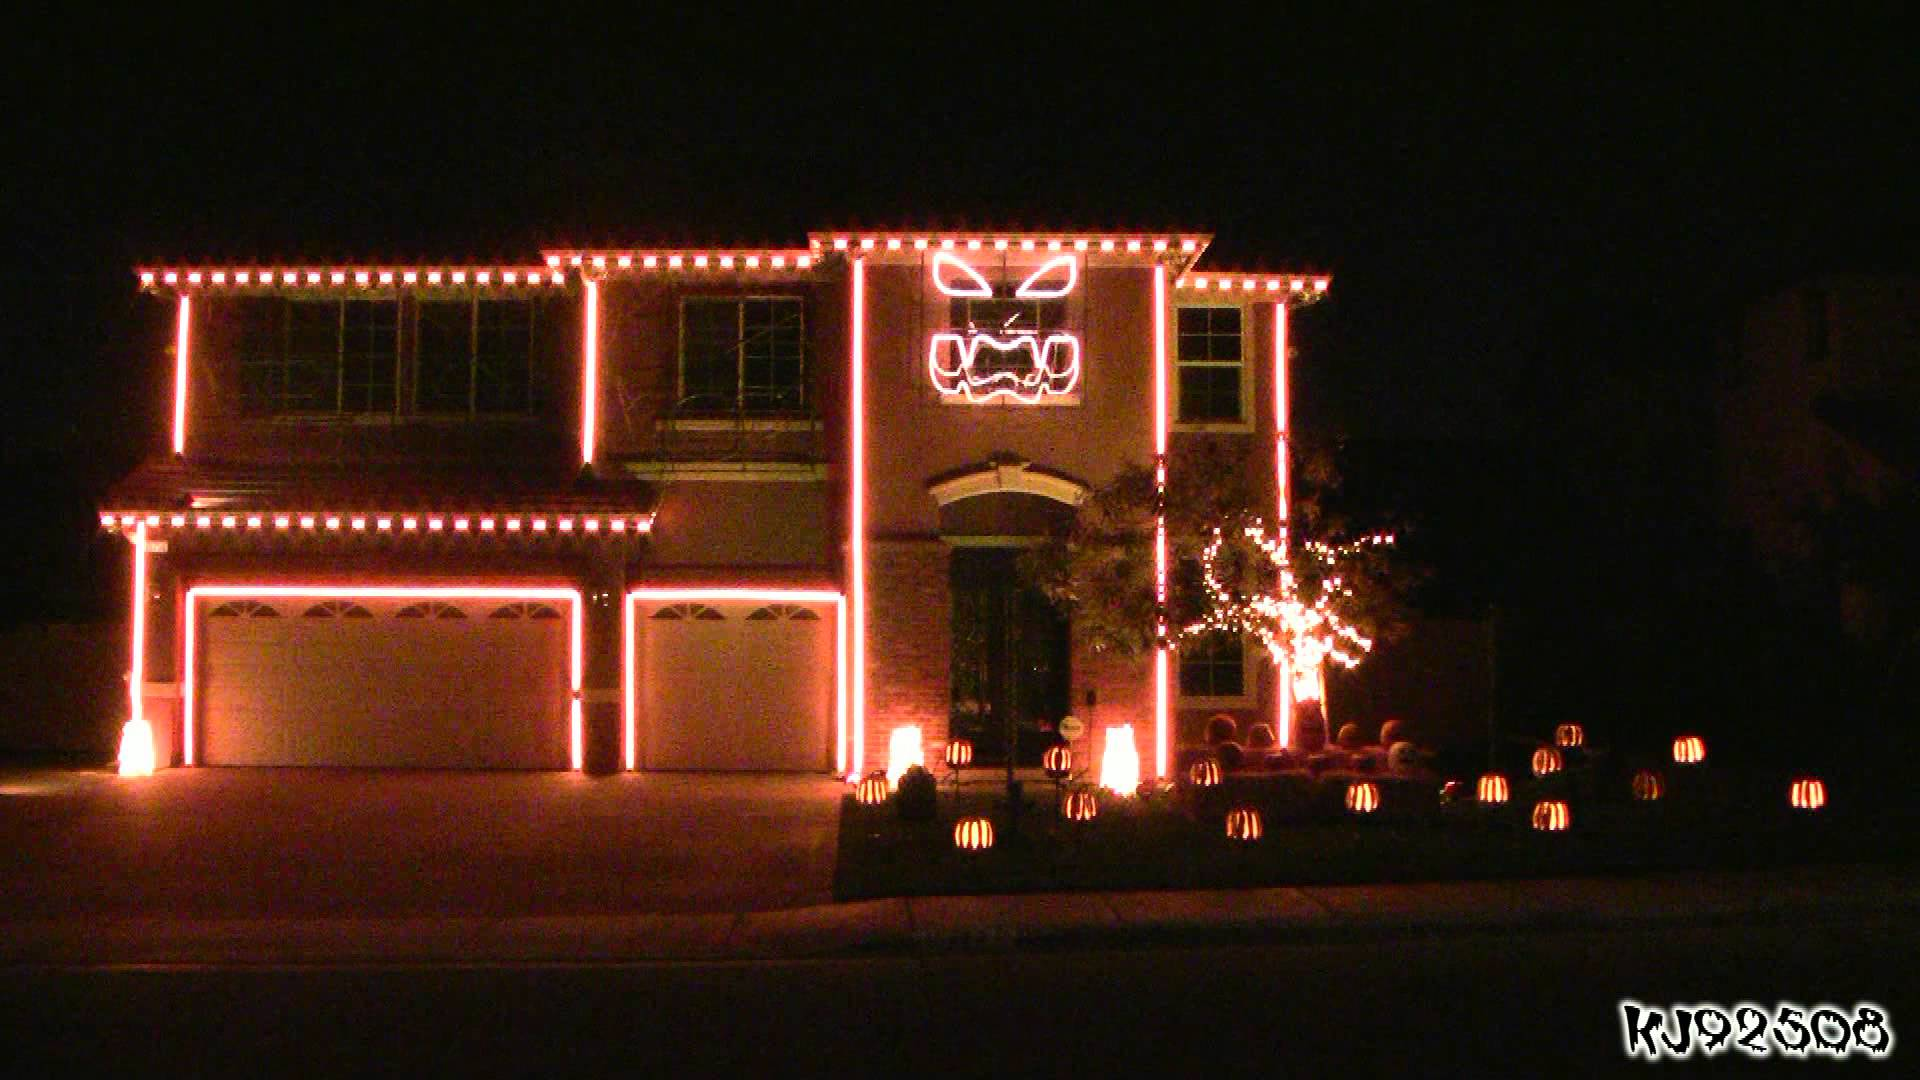 halloween light show a house with led lights synchronized to music - Christmas Lights Synchronized To Music